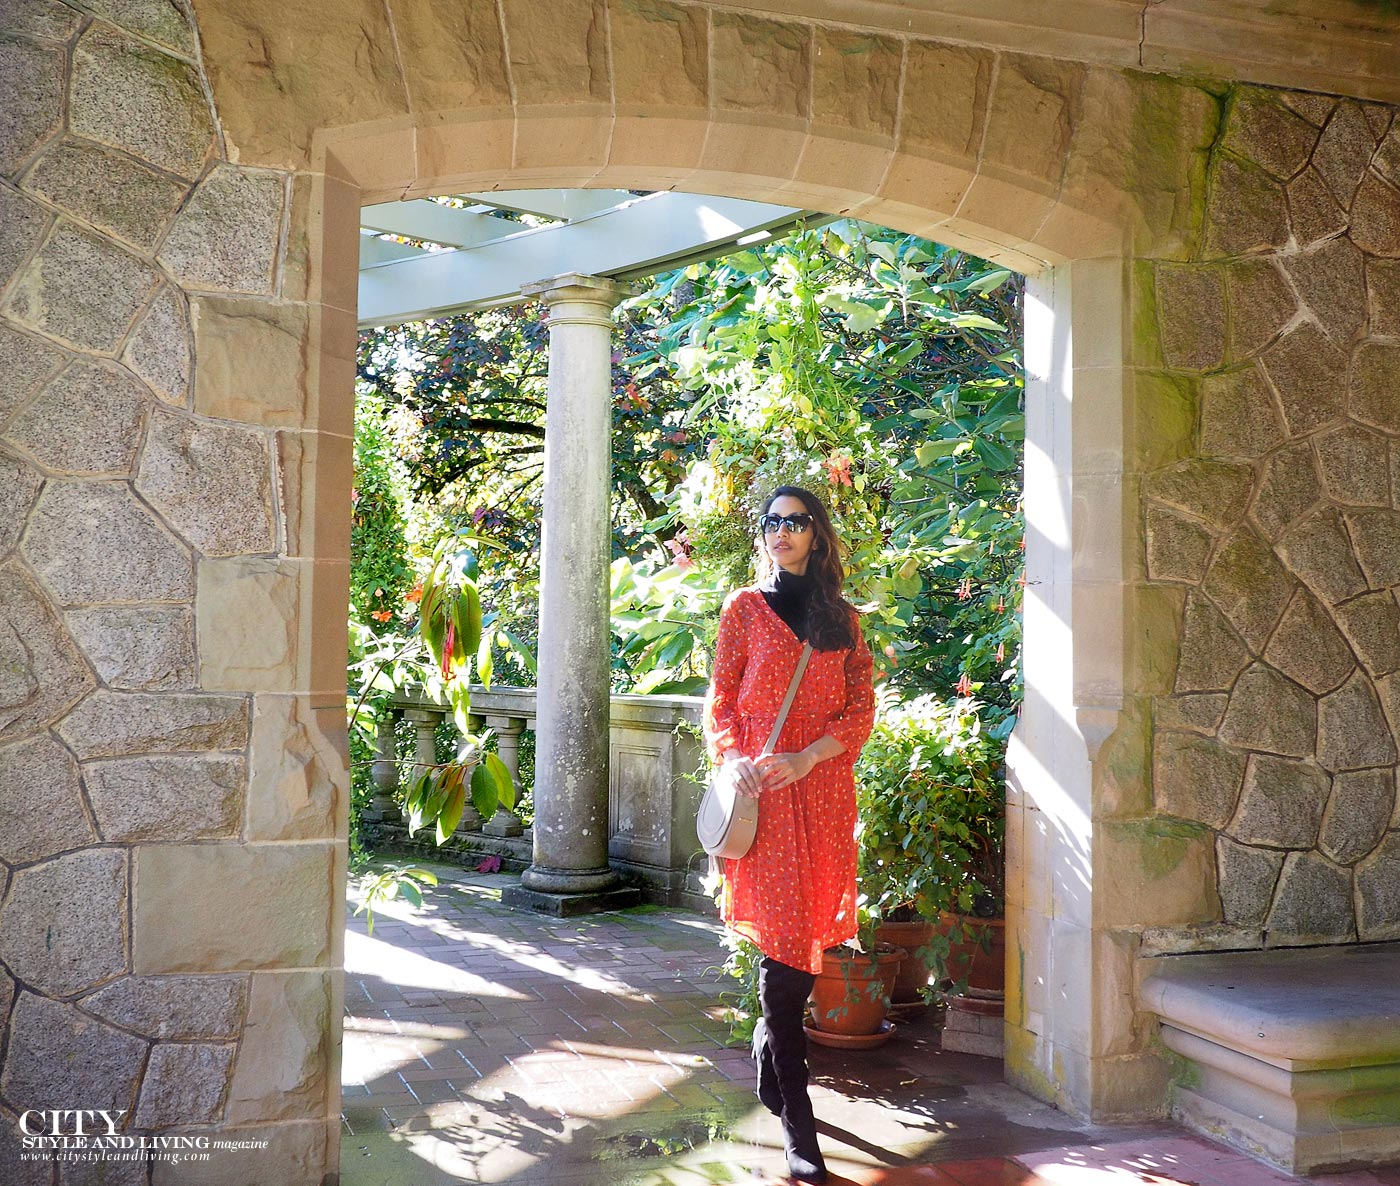 City style and living magazine Editors Notebook style fashion blogger Hatley Castle and Gardens rose and floral dress with knee high black boots Italian gardens stone wall